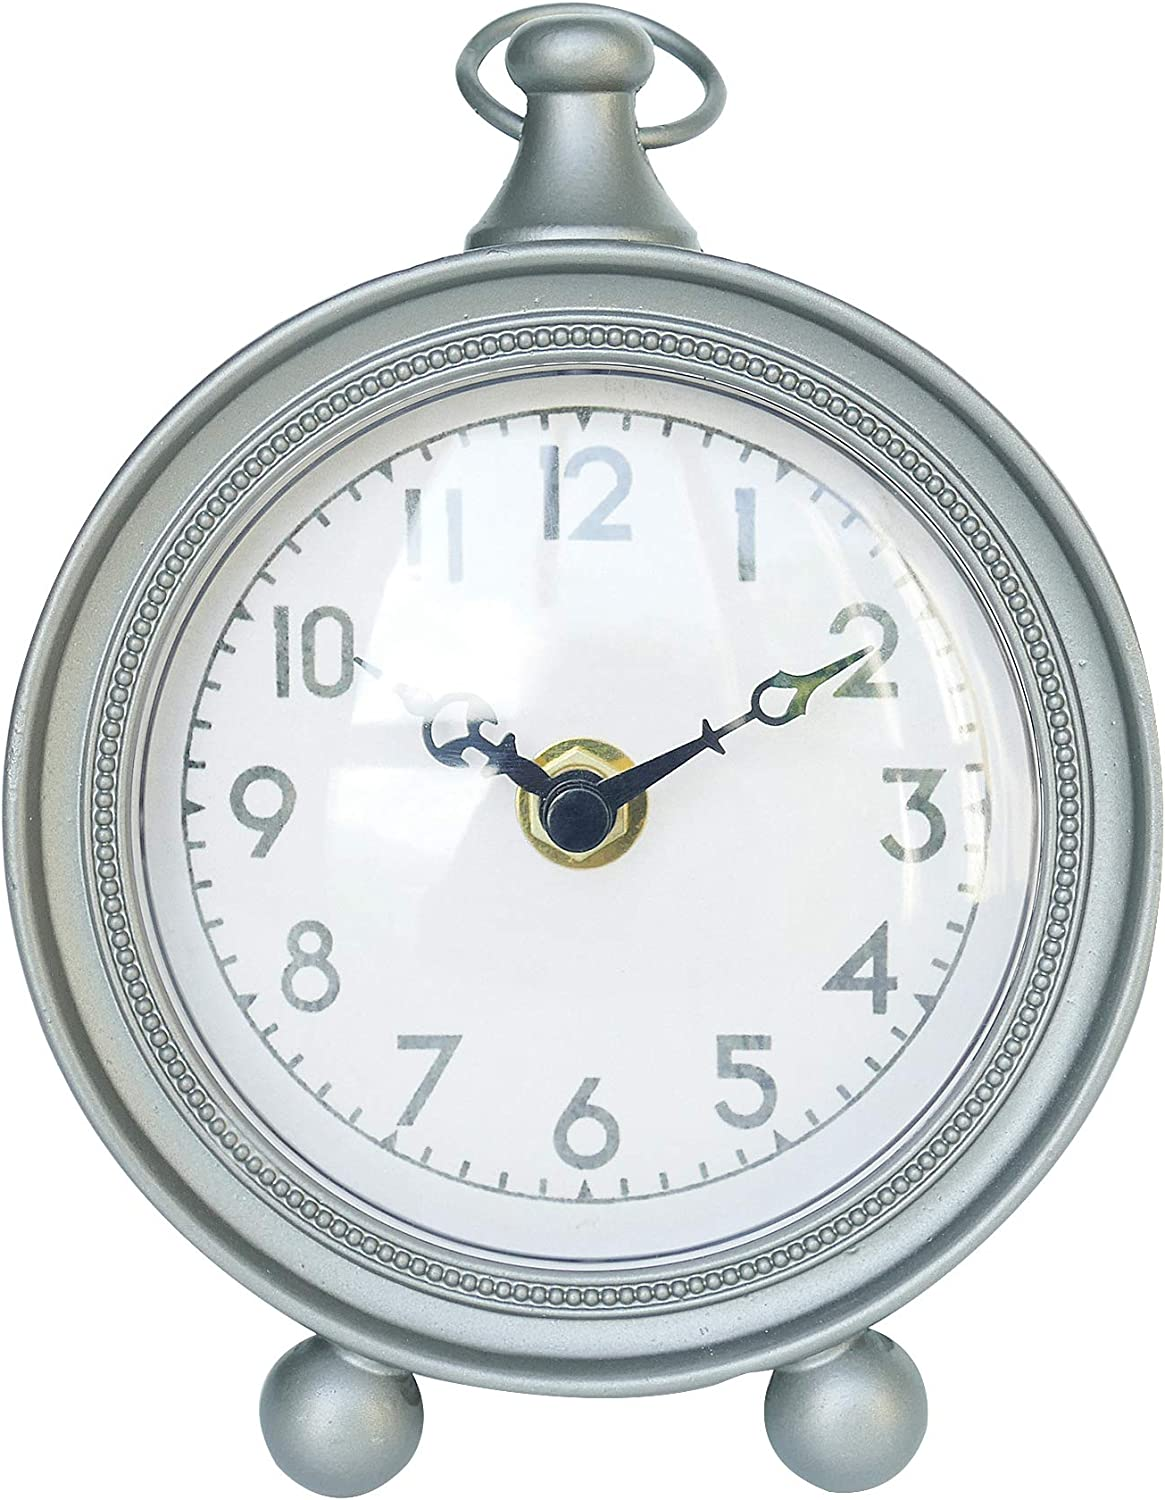 NIKKY HOME Vintage Pewter Round Table Clock with Handle - Silver - 4.7 x 5.9 x 2.16 inch